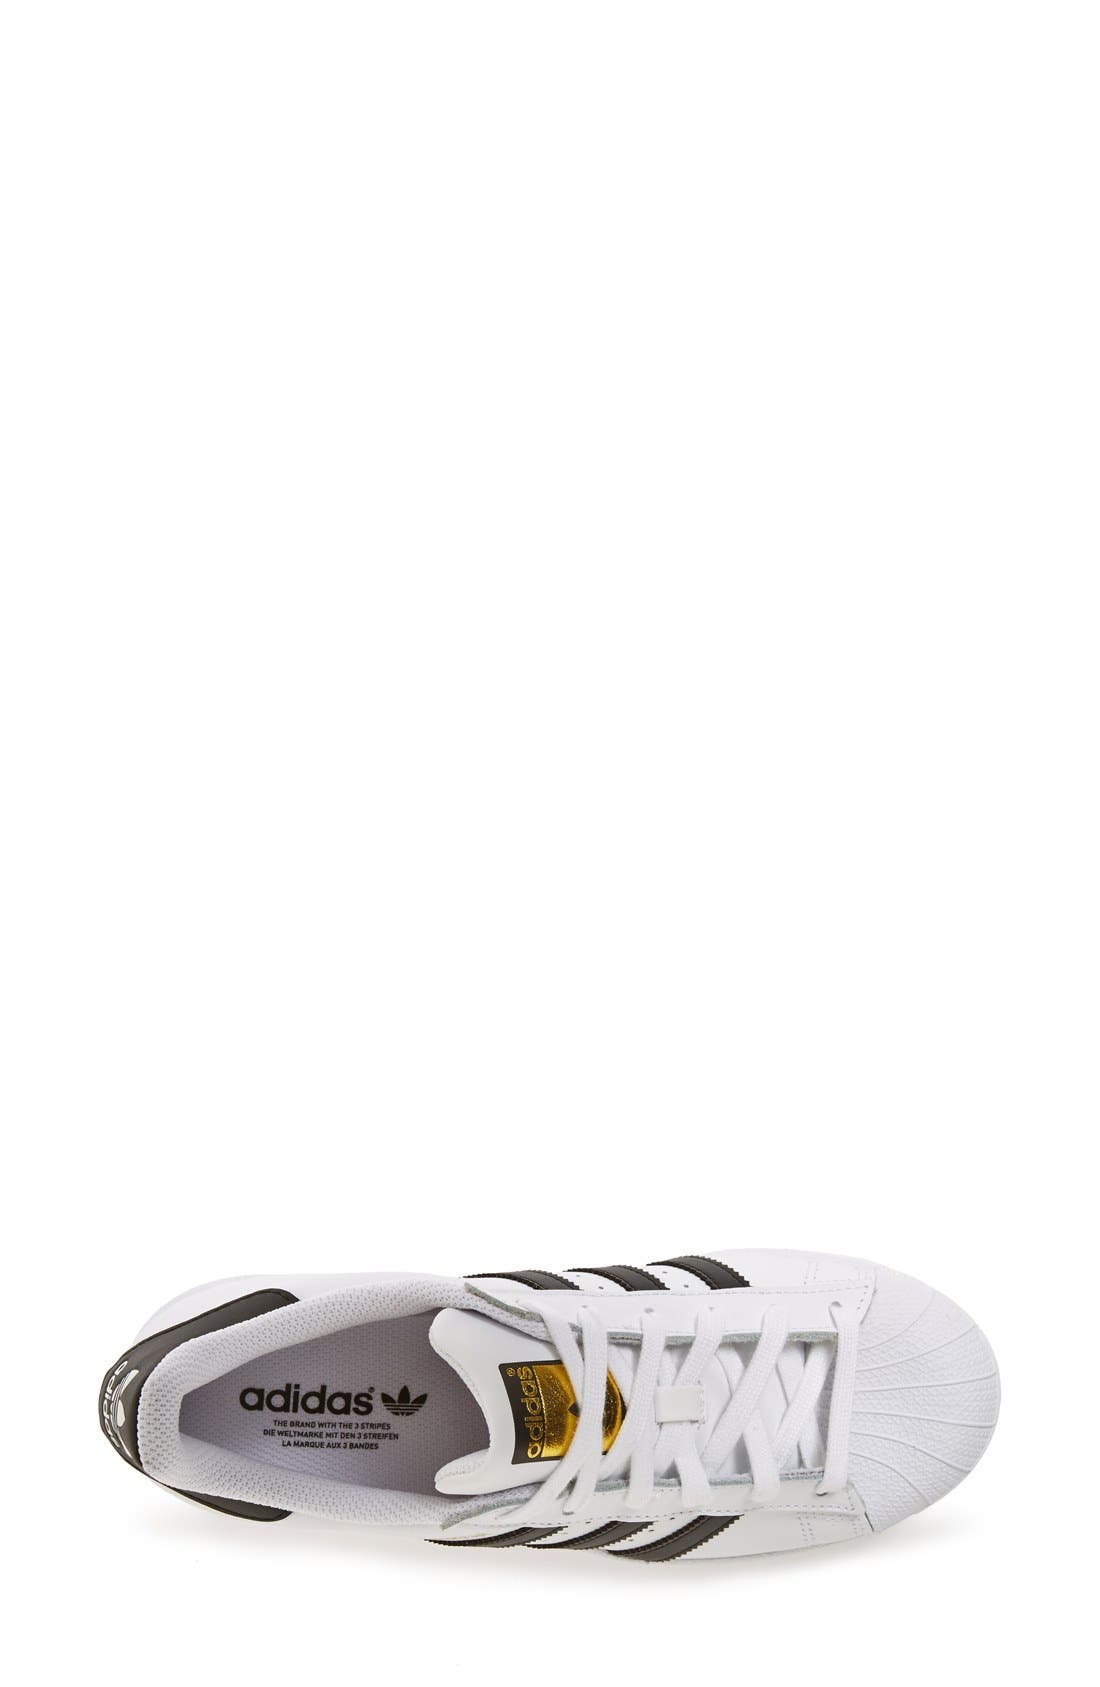 Superstar Sneaker,                             Alternate thumbnail 9, color,                             WHITE/ BLACK